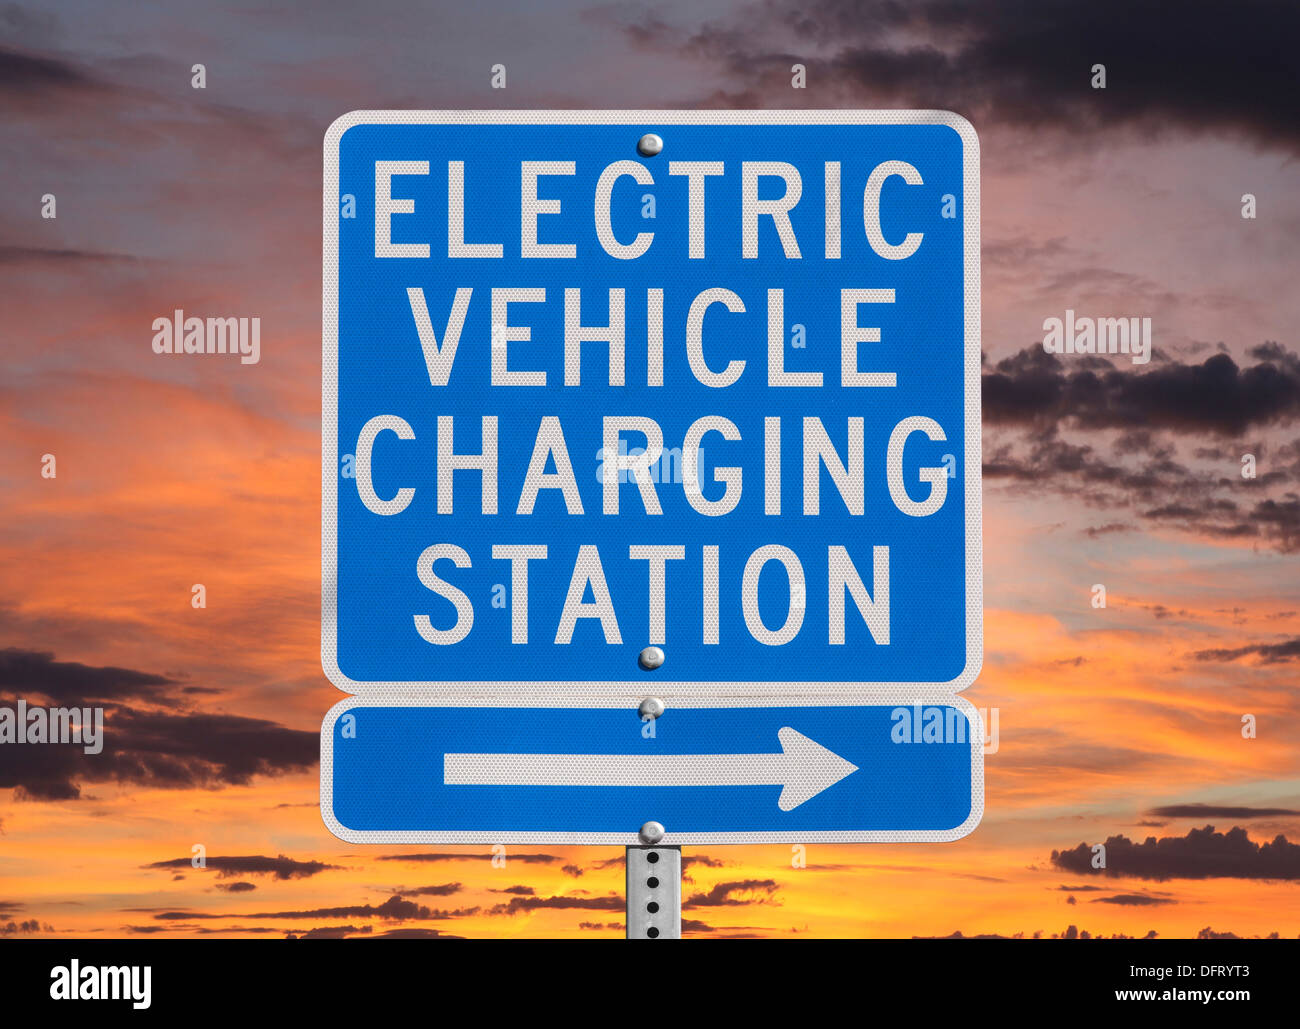 Electric vehicle charging station sign isolated with sunset sky. - Stock Image